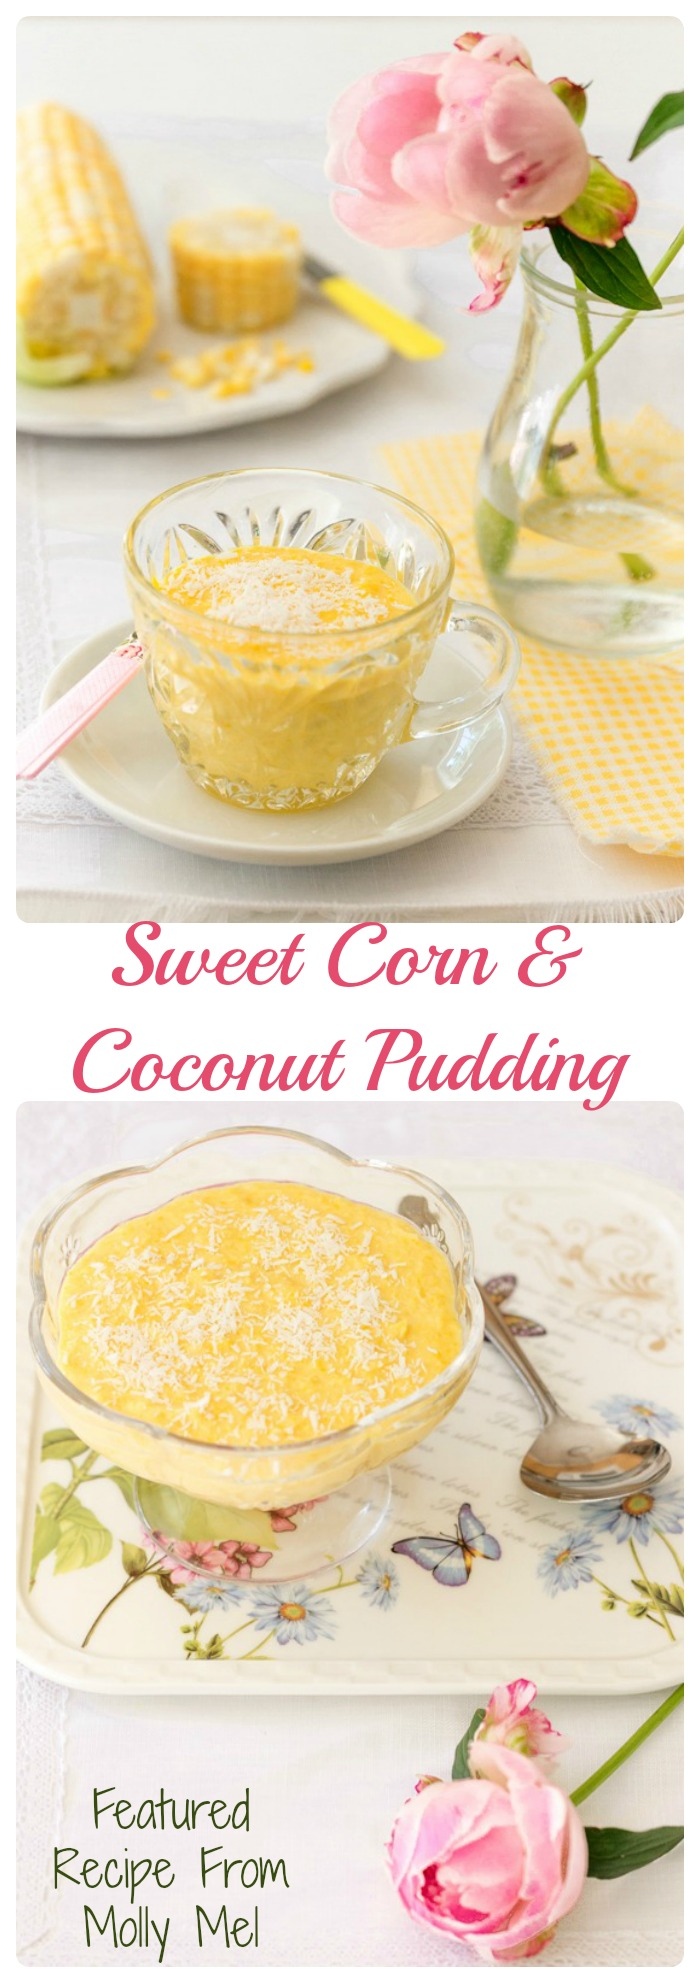 This Sweet corn and coconut pudding is the perfect rich and creamy summer time sweet.  My friend Regina from mollymel.blogspot.com shared it for my readers to enjoy.